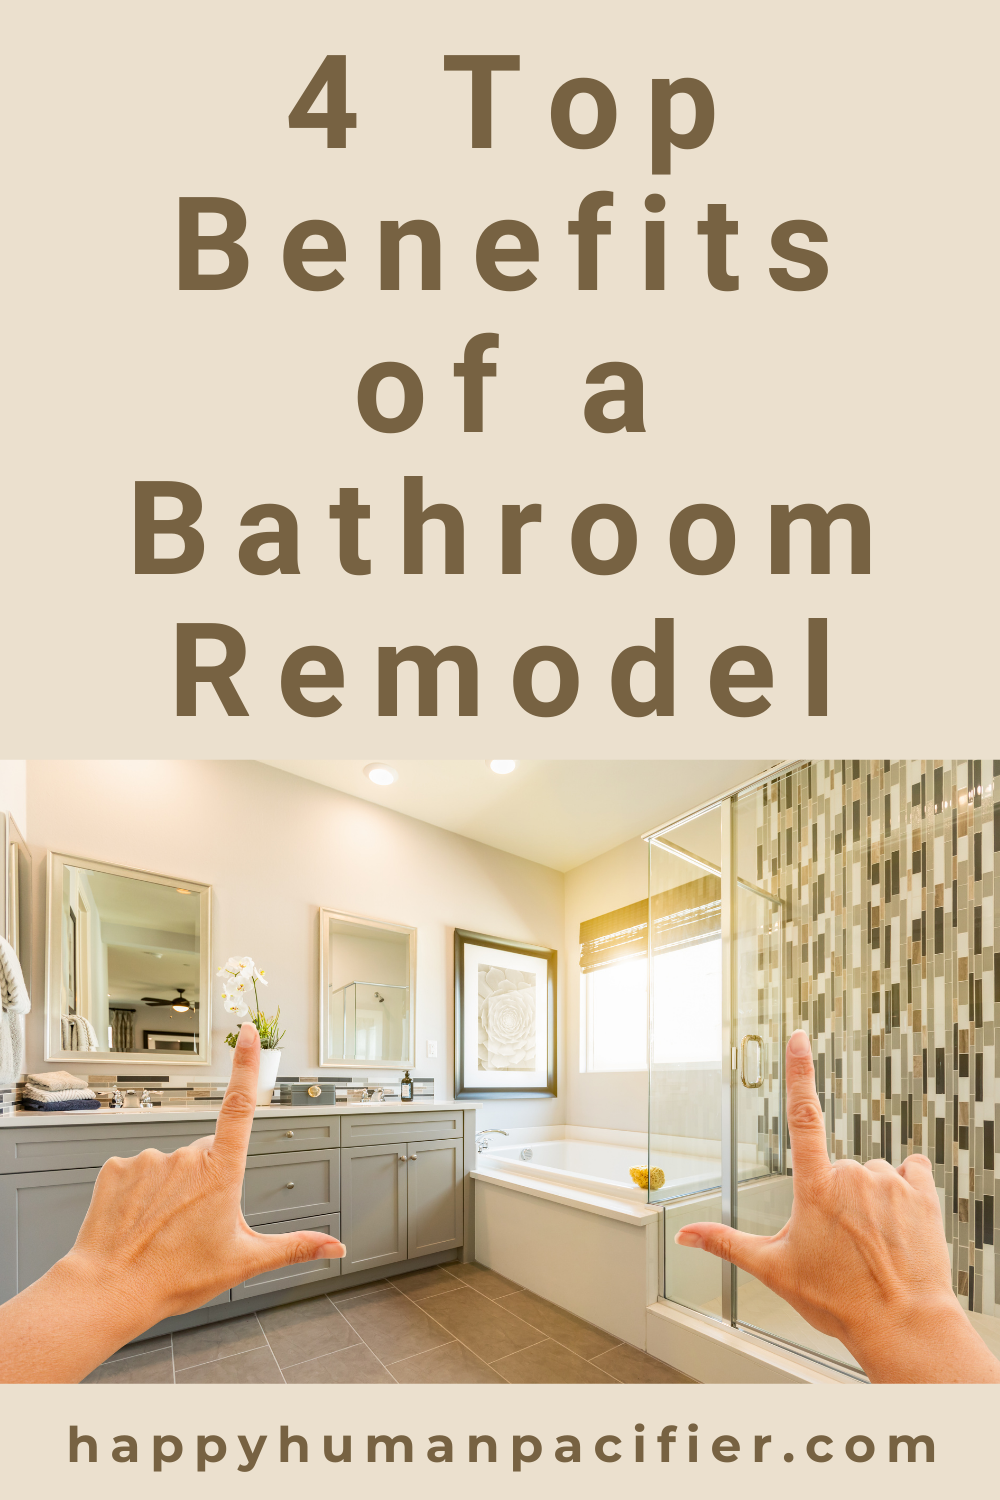 If you are thinking about doing some home renovations, the smartest choice you could make when it comes to home renovation is a bathroom remodel. Here is why.